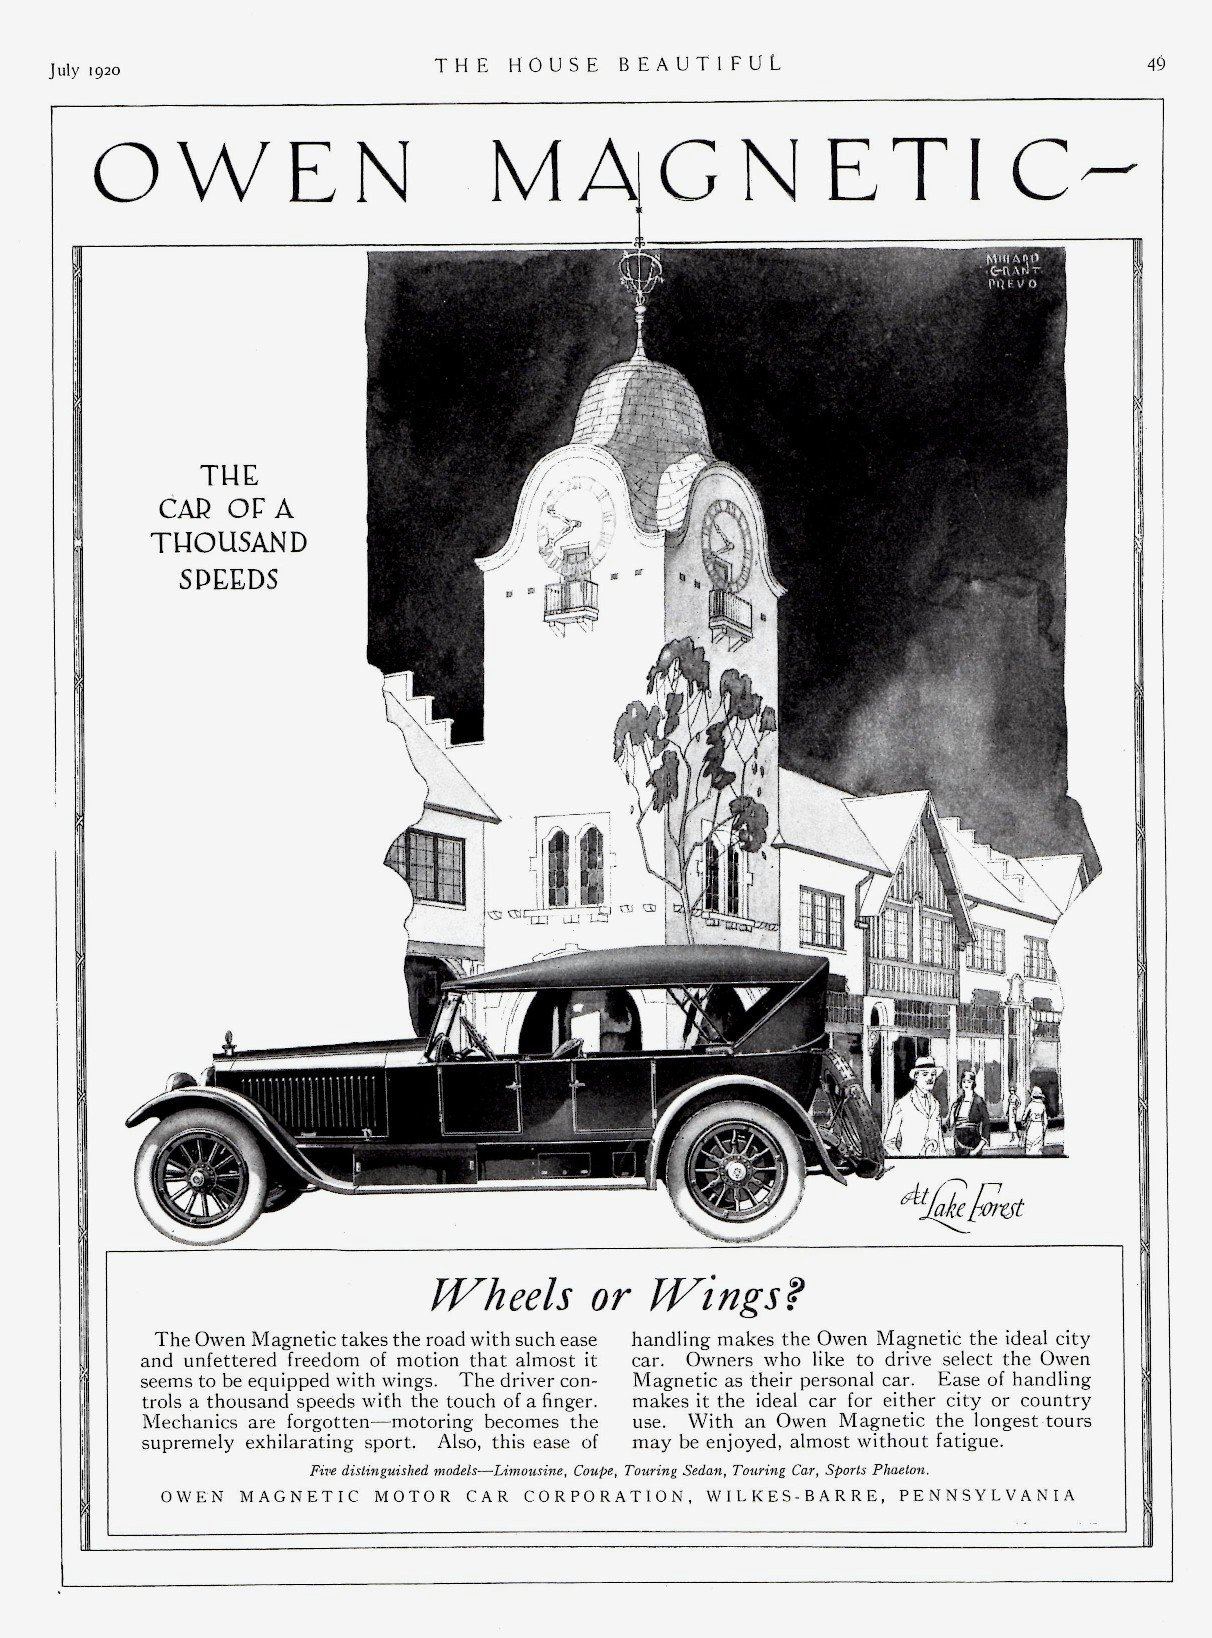 How Automobile Advertising Has Changed Over Time - DMV.com